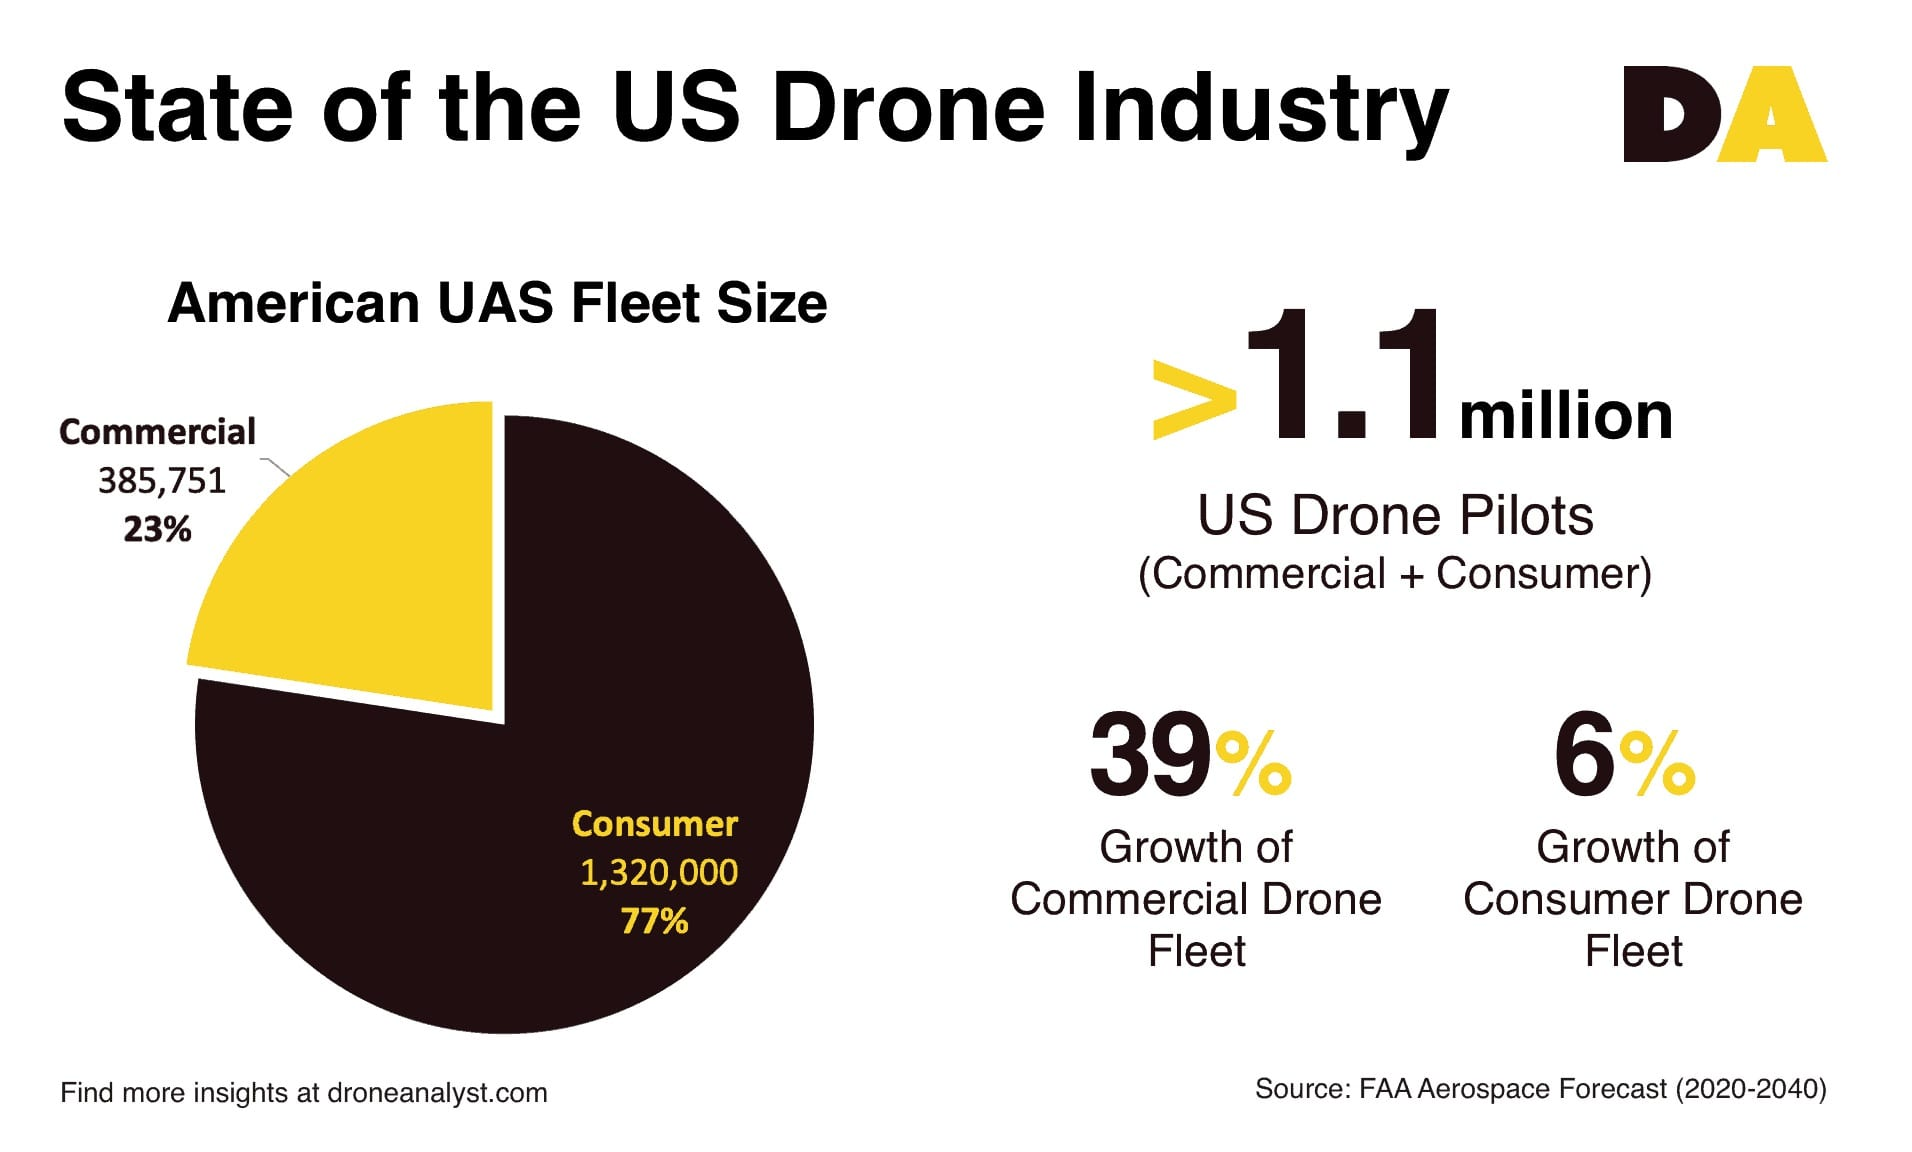 DroneAnalyst provides new insight into FAA Aerospace Forecast on drone industry